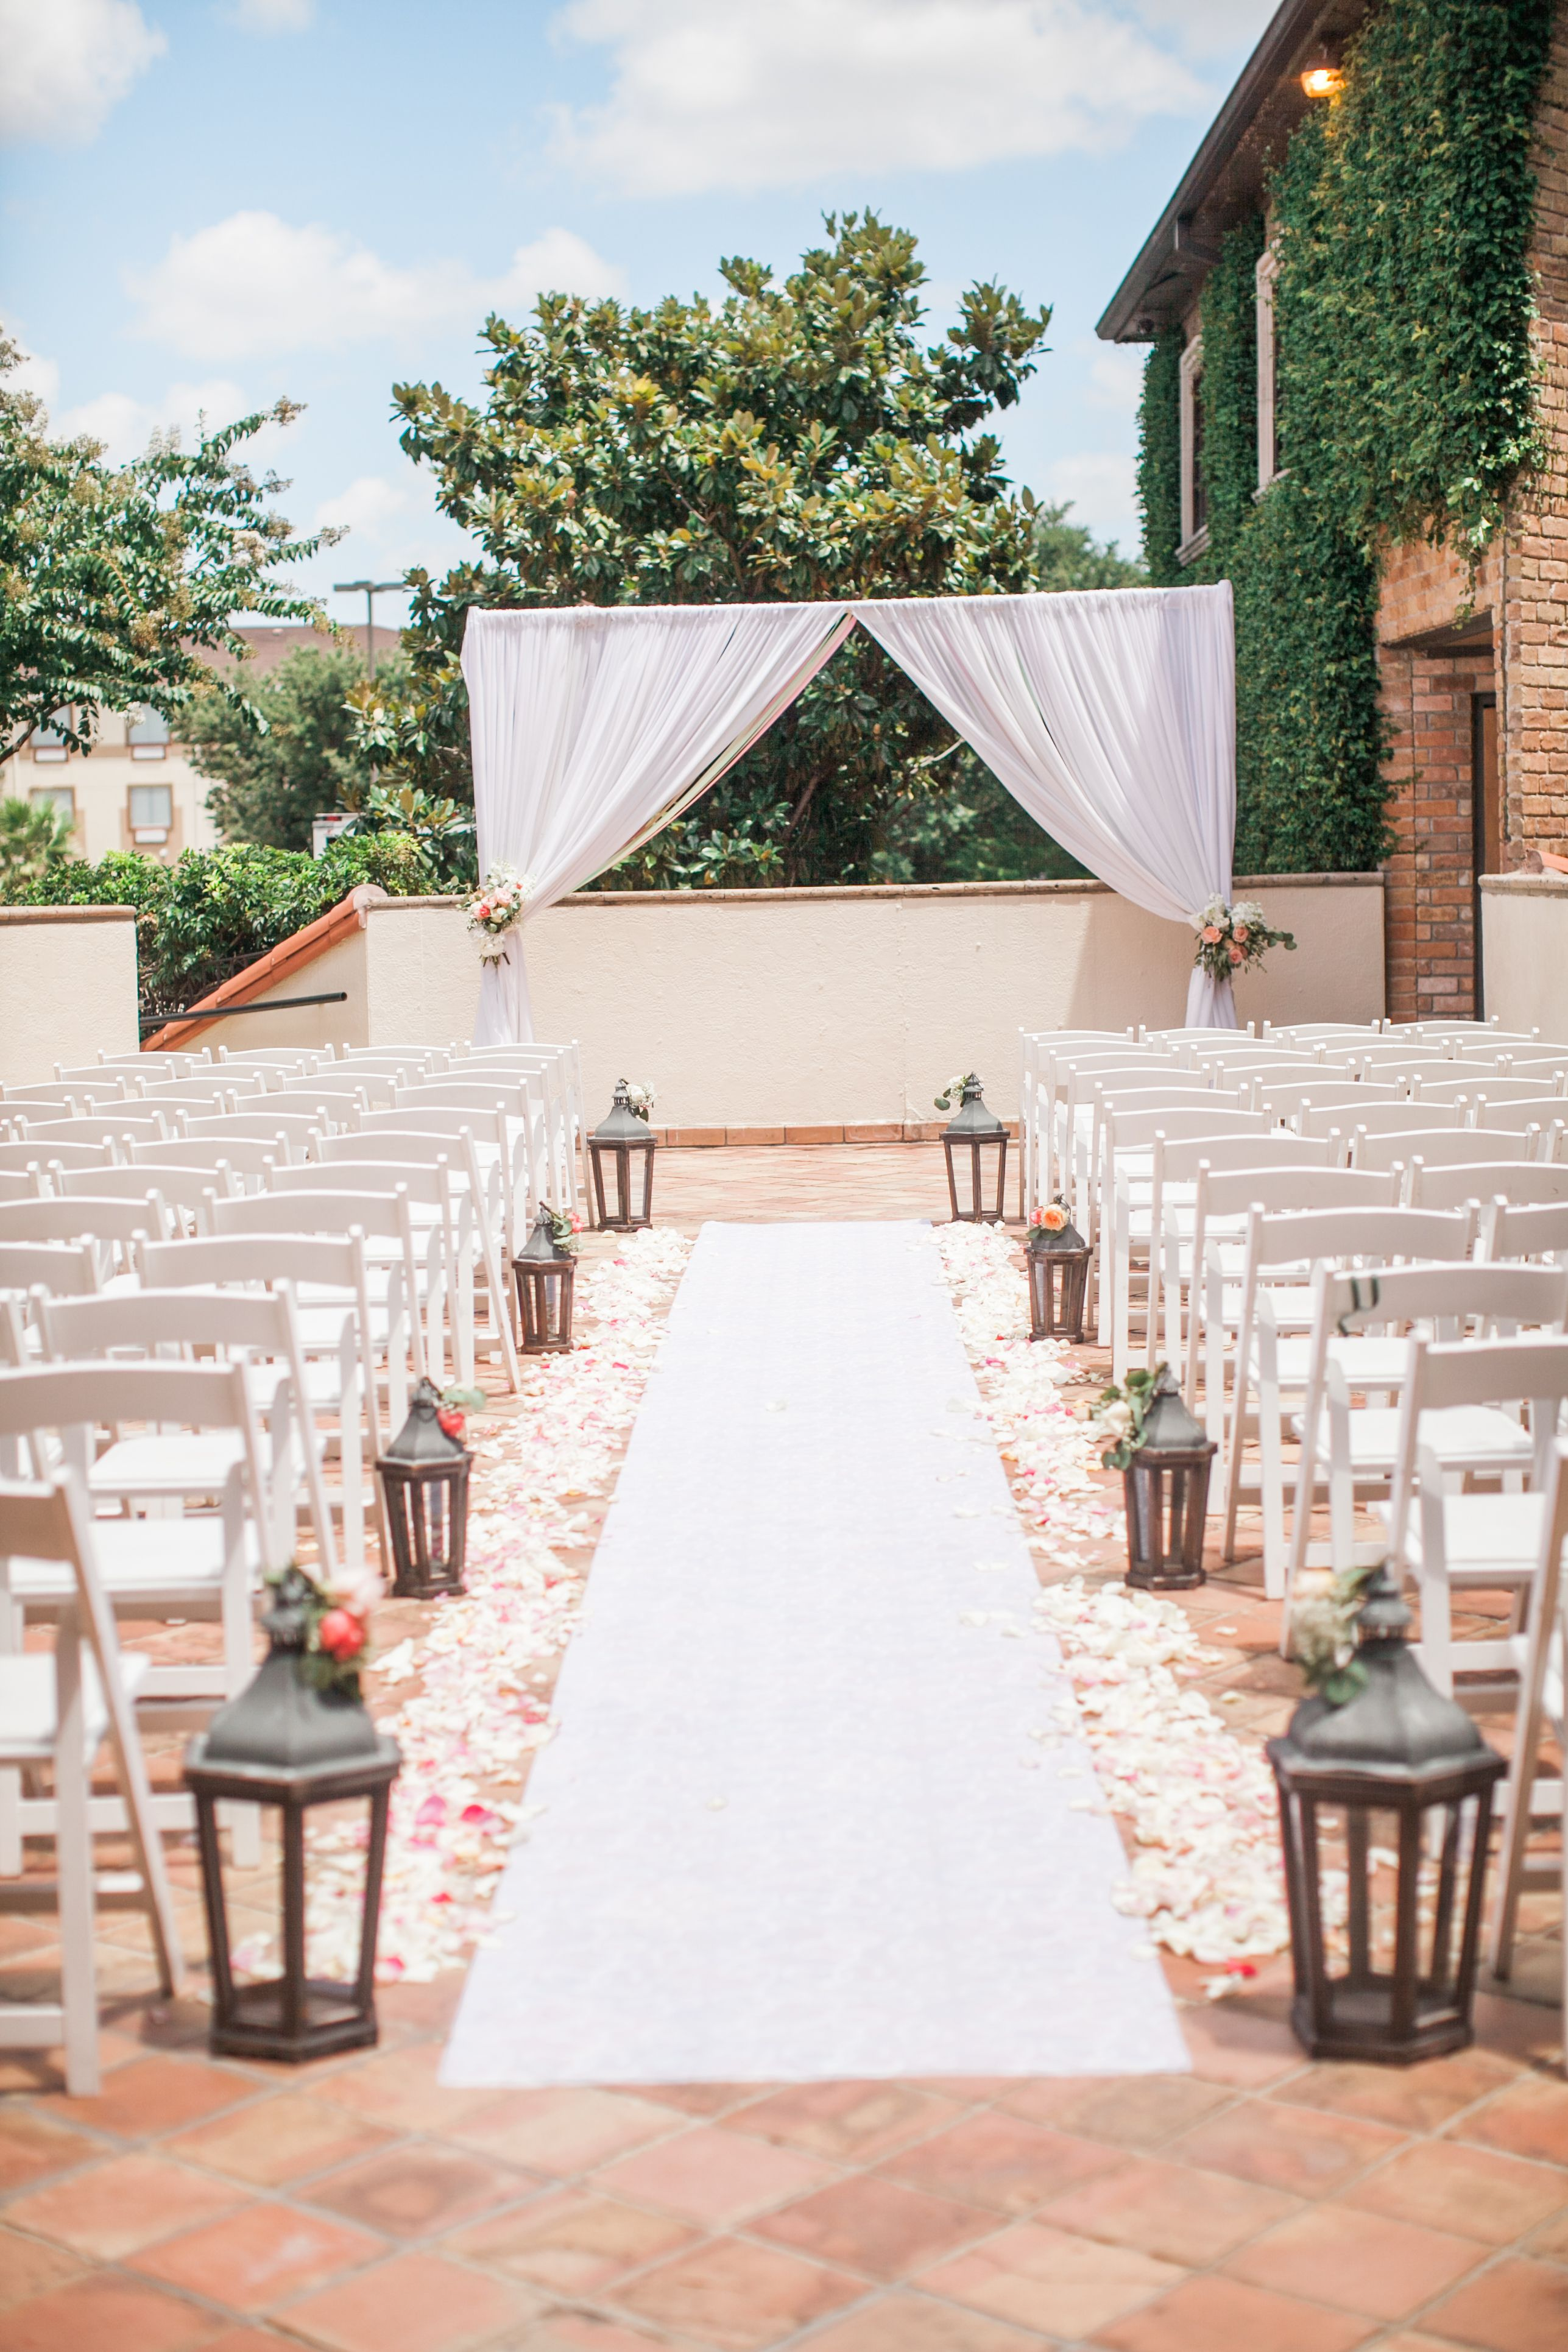 Ourdoor Ceremony Site At The Gallery Houston Wedding And Event